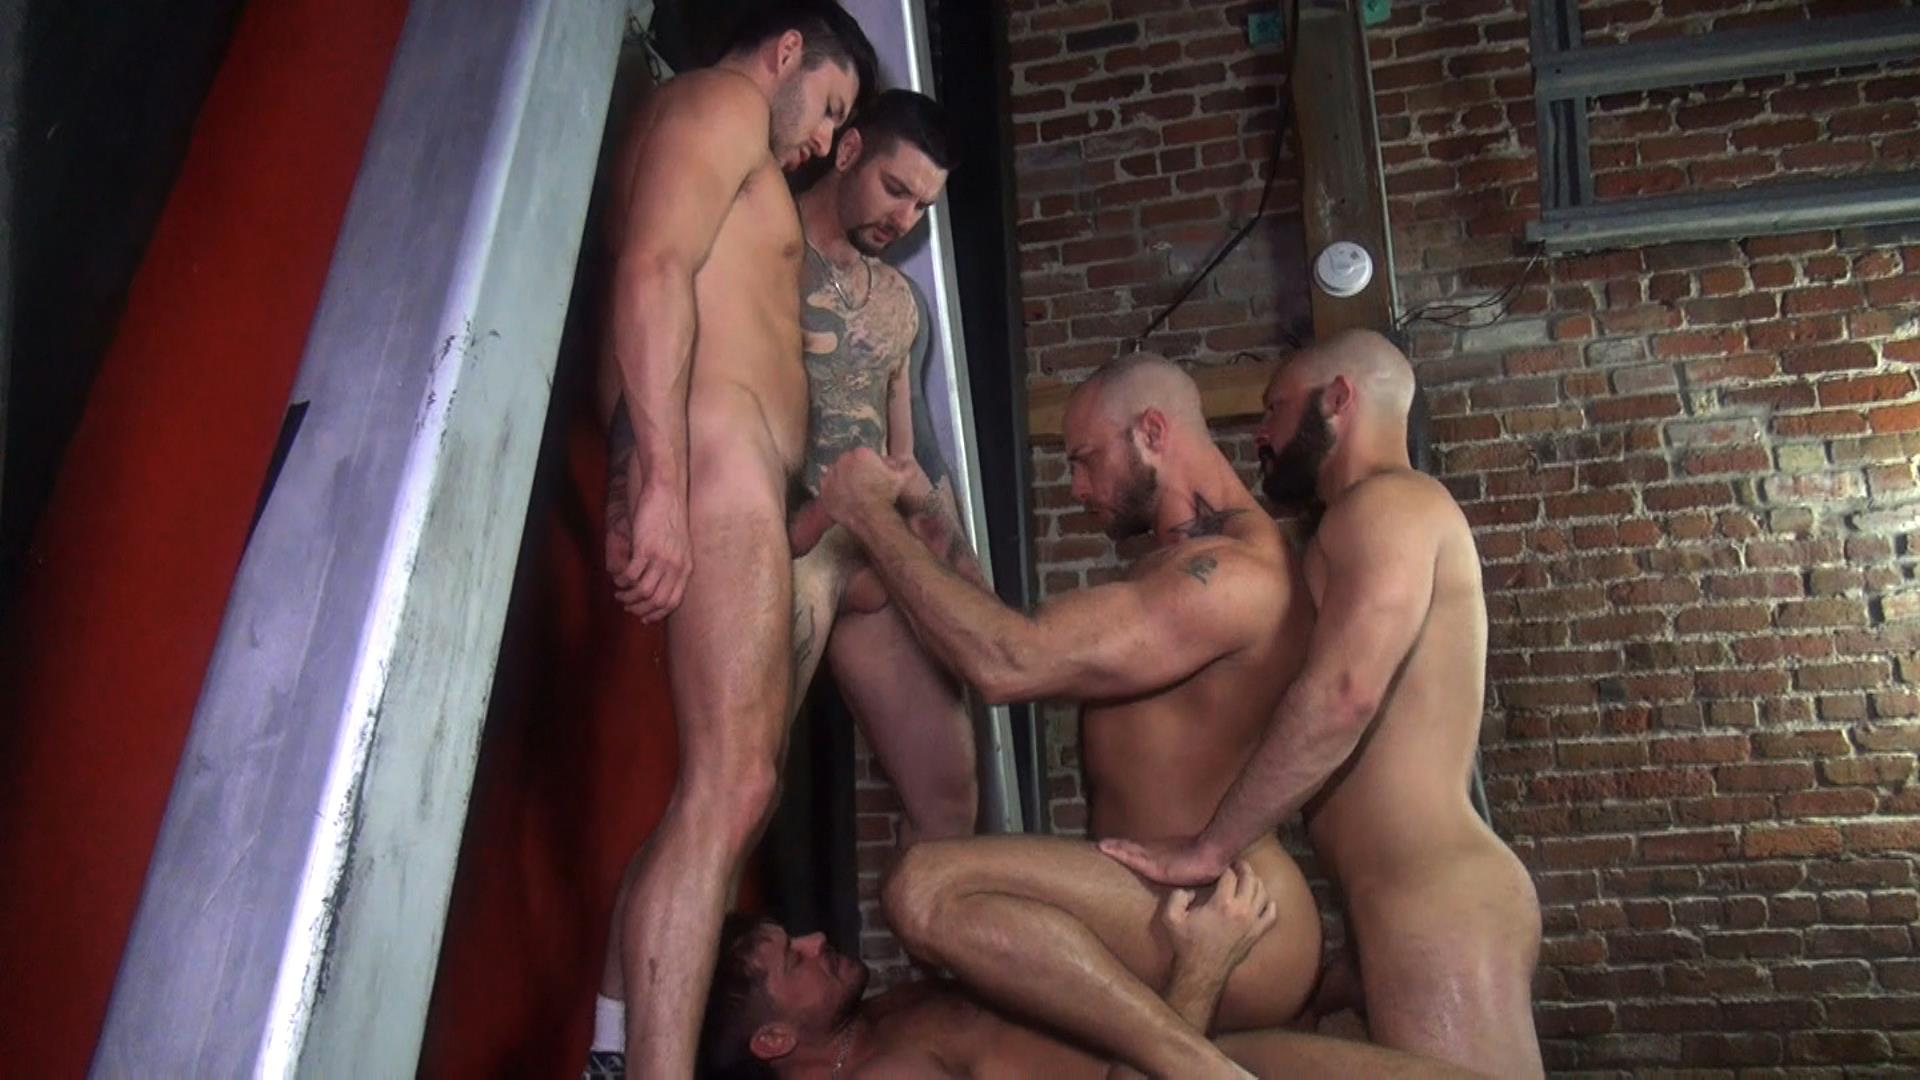 Raw-Fuck-Club-Dylan-Strokes-and-Scott-DeMarco-and-Jack-Andy-and-Jessie-Colter-and-Teddy-Bryce-Bareback-Sex-Video-04 Jessie Colter's First Bareback Gangbang At A Sleazy Bathhouse